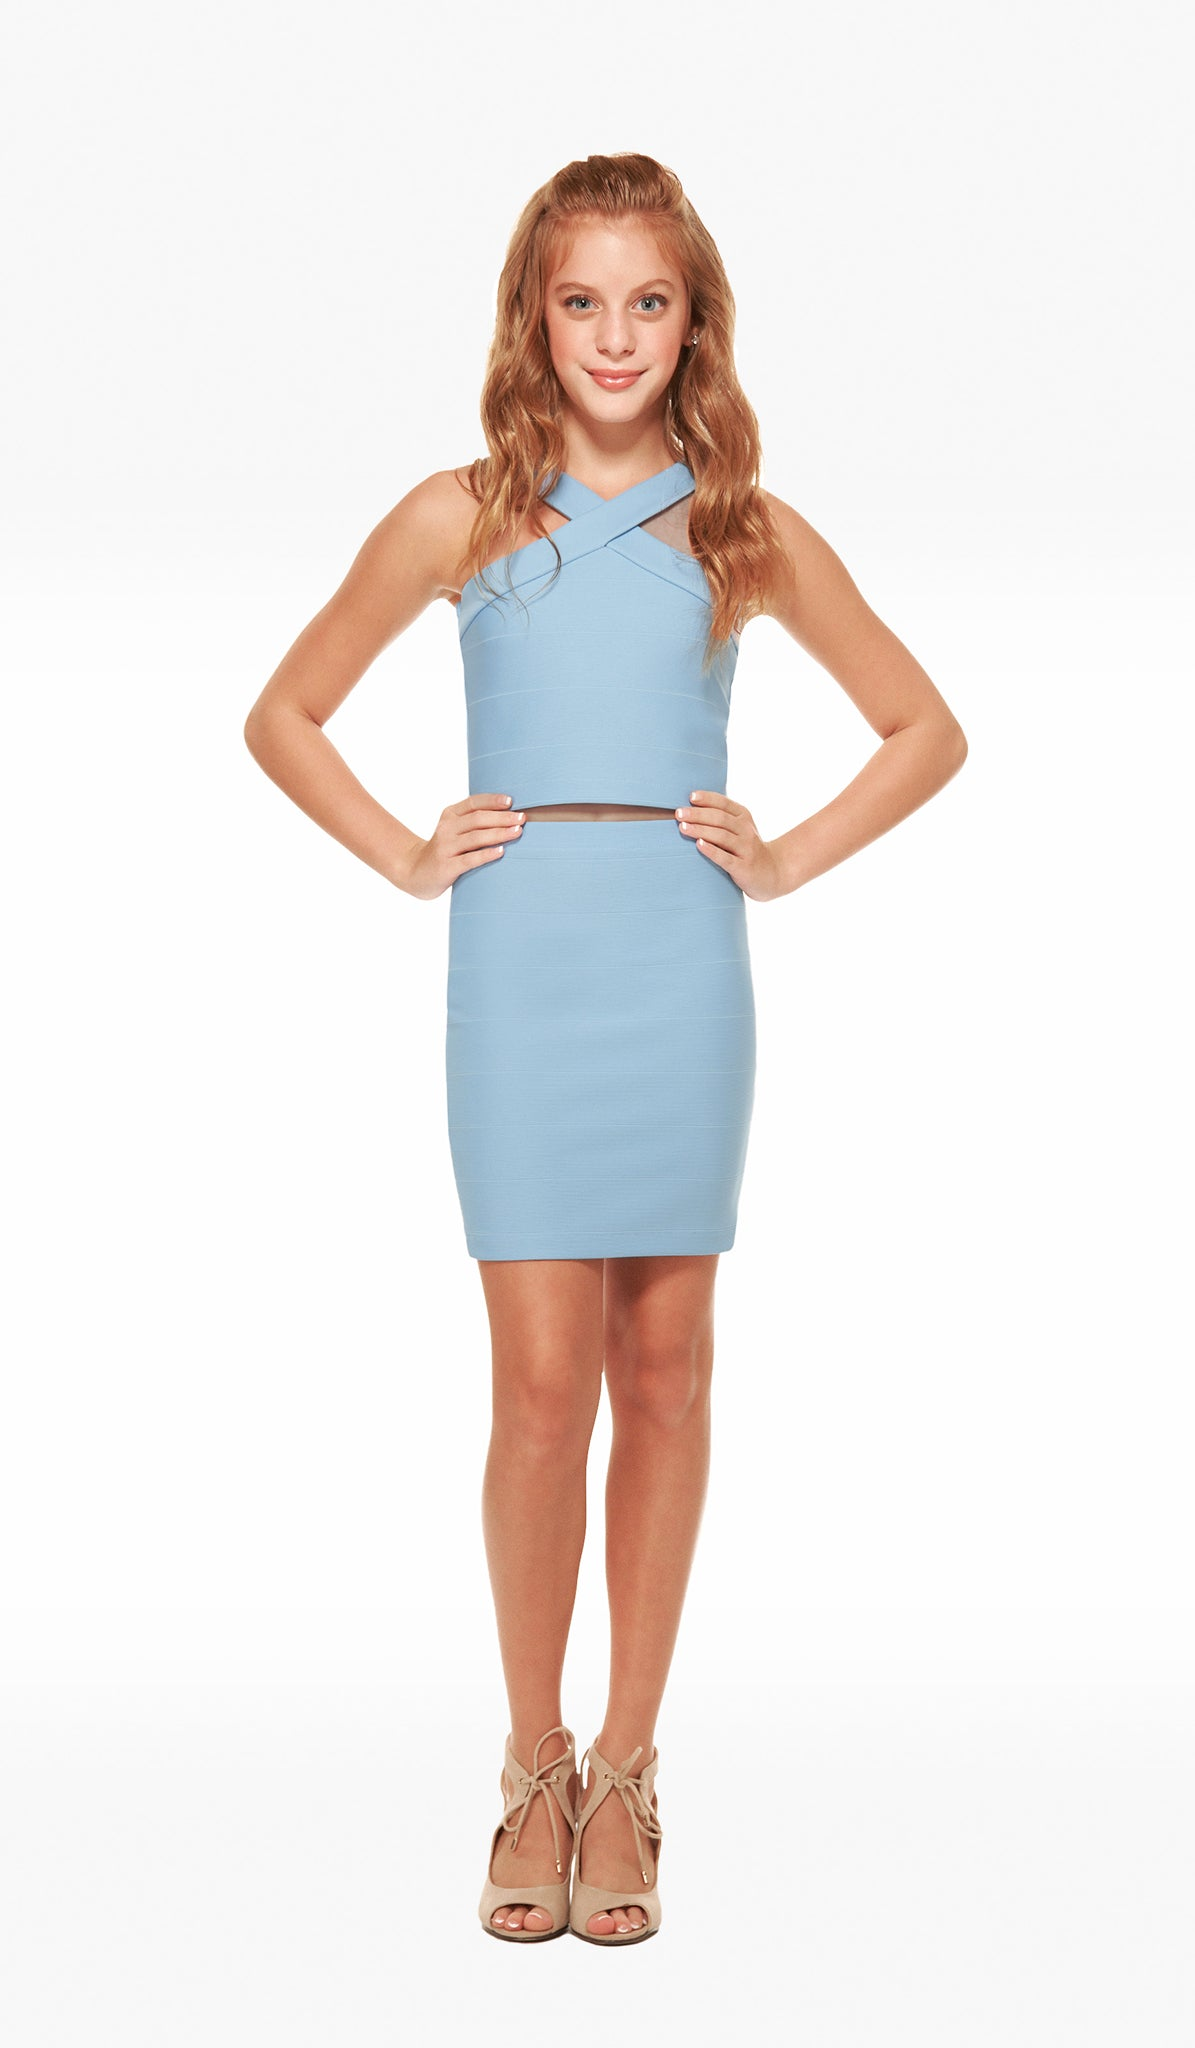 THE CARDI SET - Sallymiller.com - [variant title] - | Event & Party Dresses for Tween Girls & Juniors | Weddings Dresses, Bat Mitzvah Dresses, Sweet Sixteen Dresses, Graduation Dresses, Birthday Party Dresses, Bar Mitzvah Dresses, Cotillion Dresses